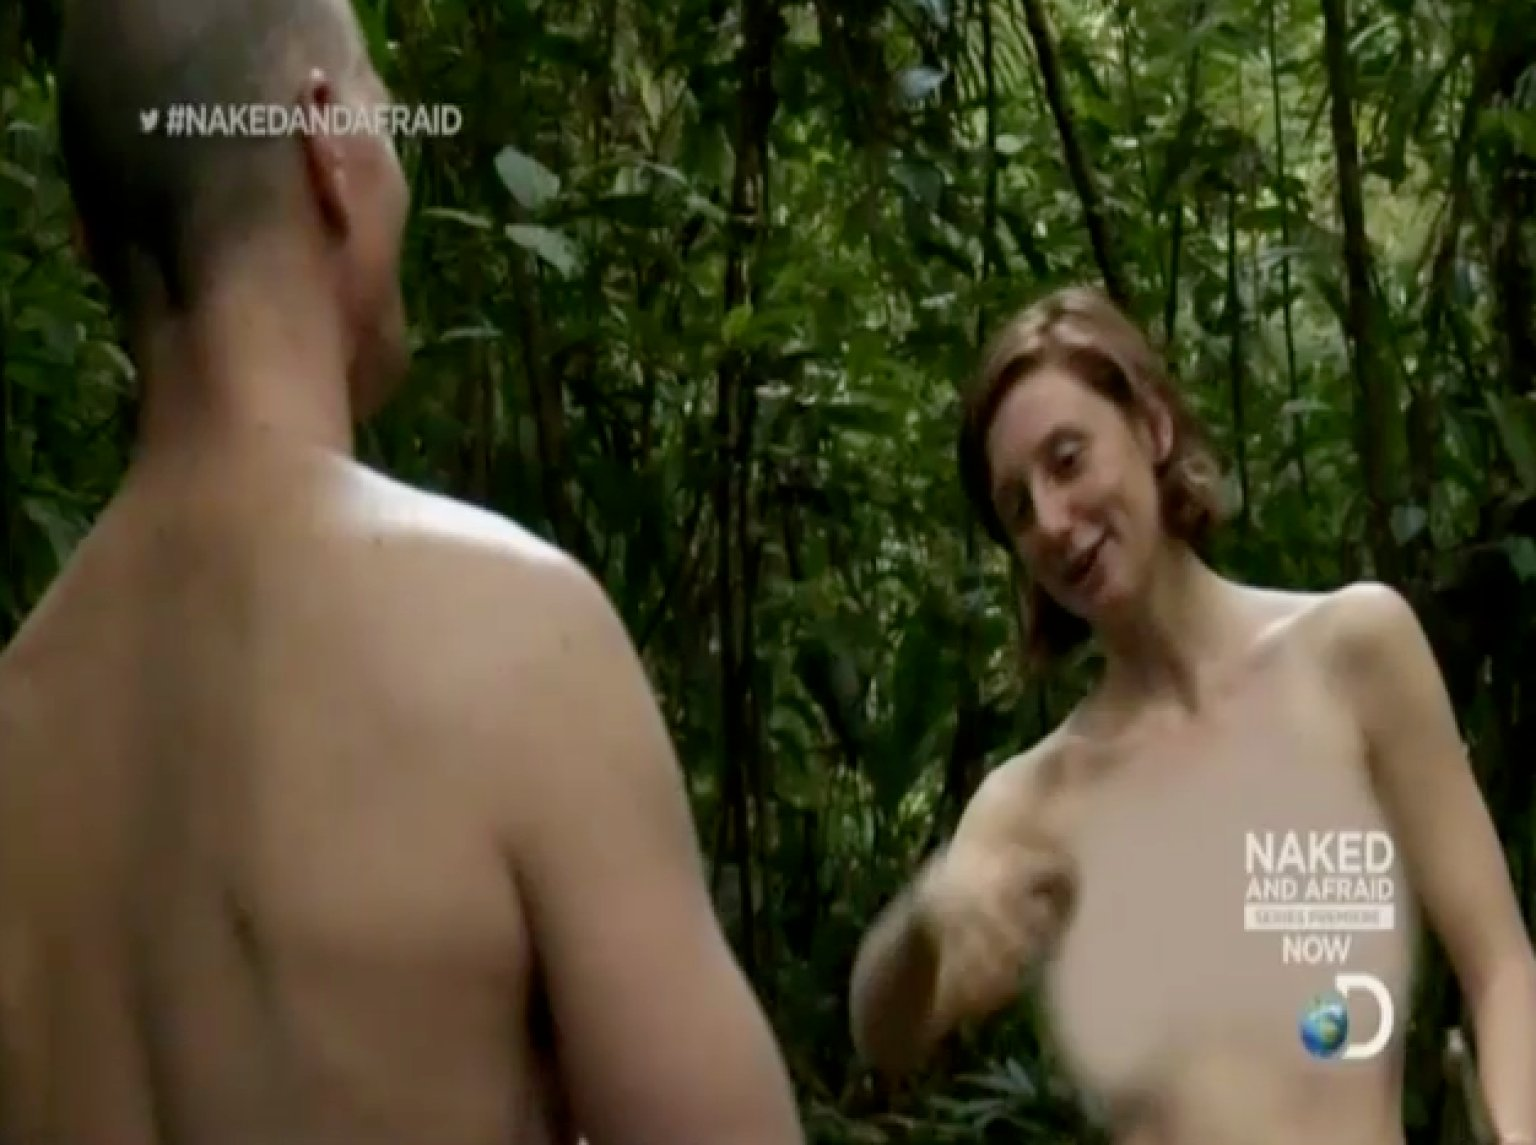 Photos of naked and afraid-2581